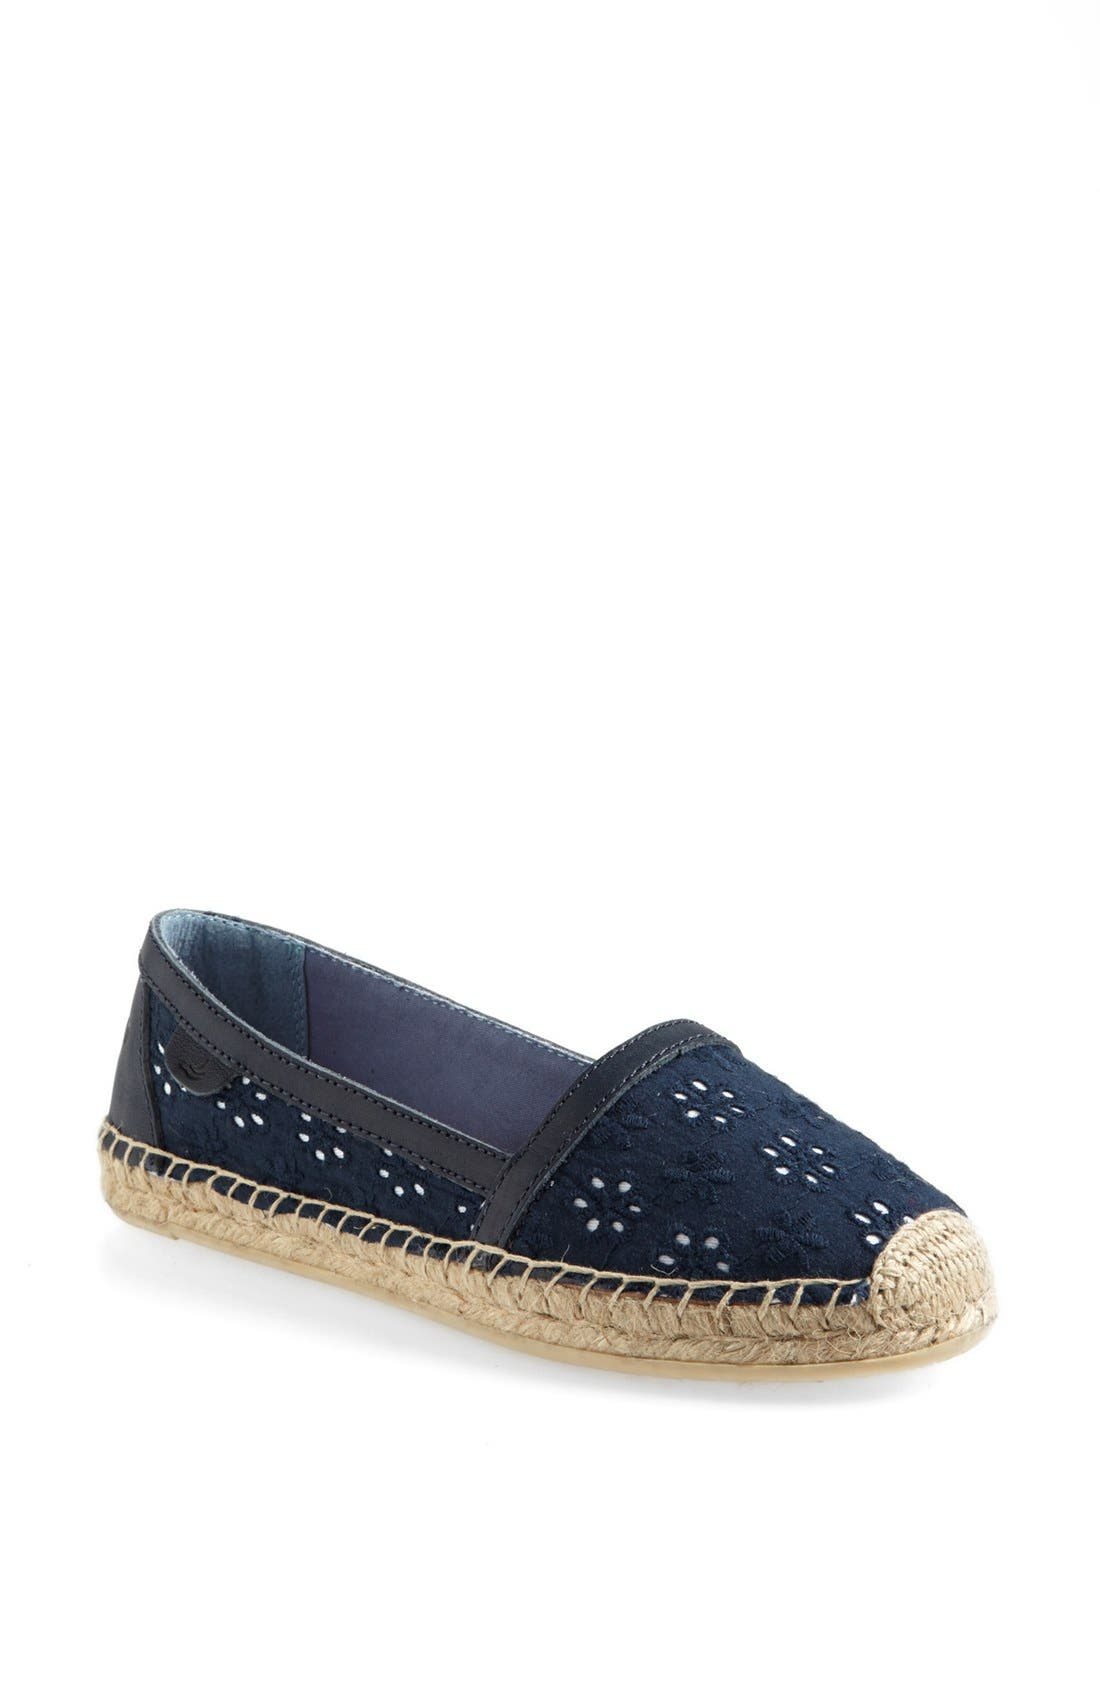 Alternate Image 1 Selected - SPERRY DANICA FLAT